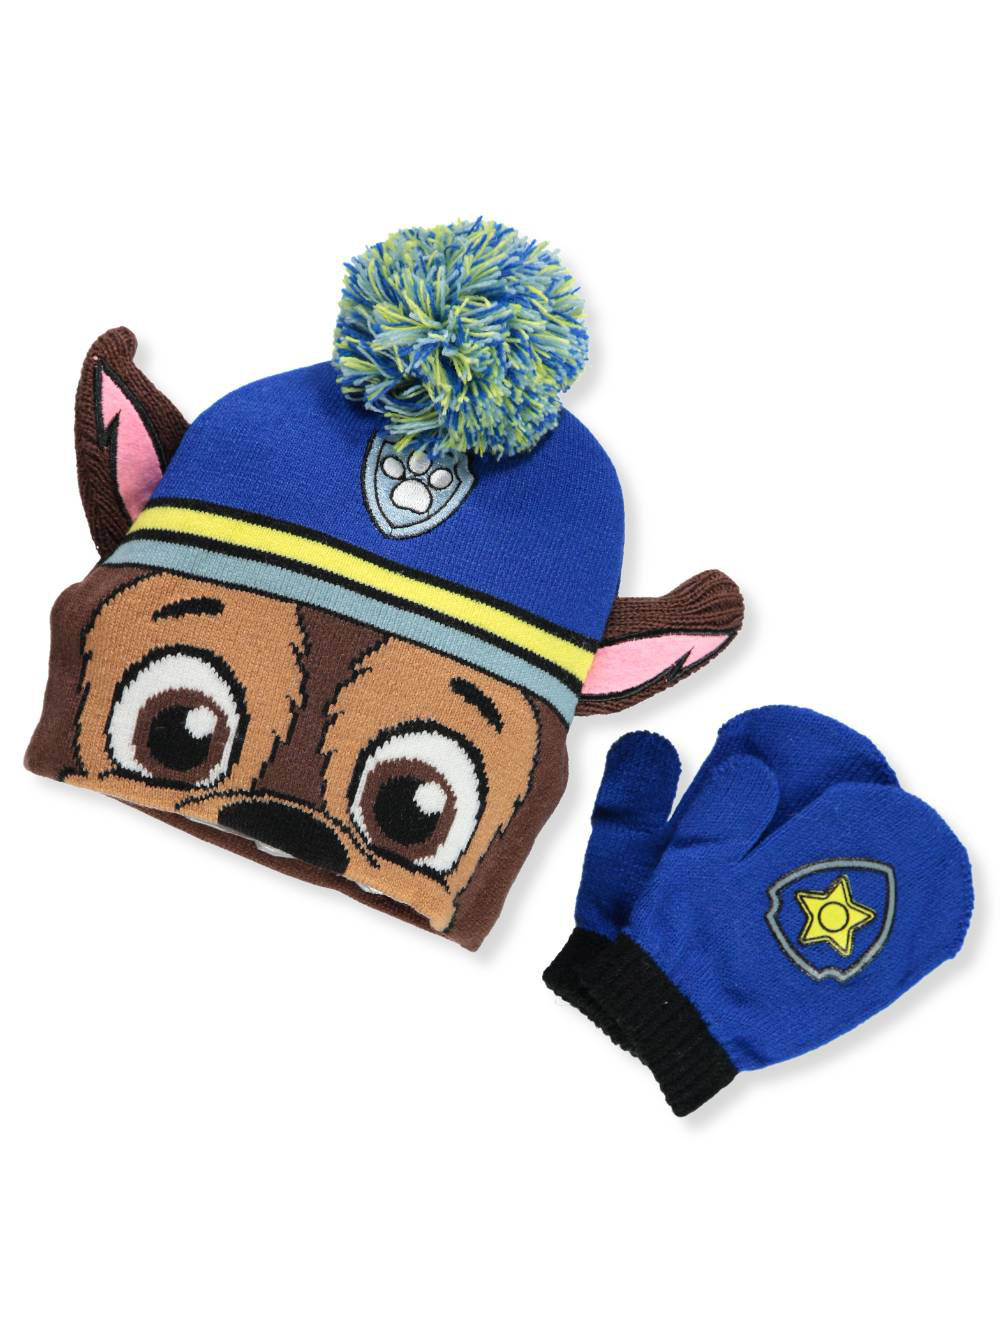 Paw Patrol Boys' Beanie & Mittens Set (Toddler One Size)